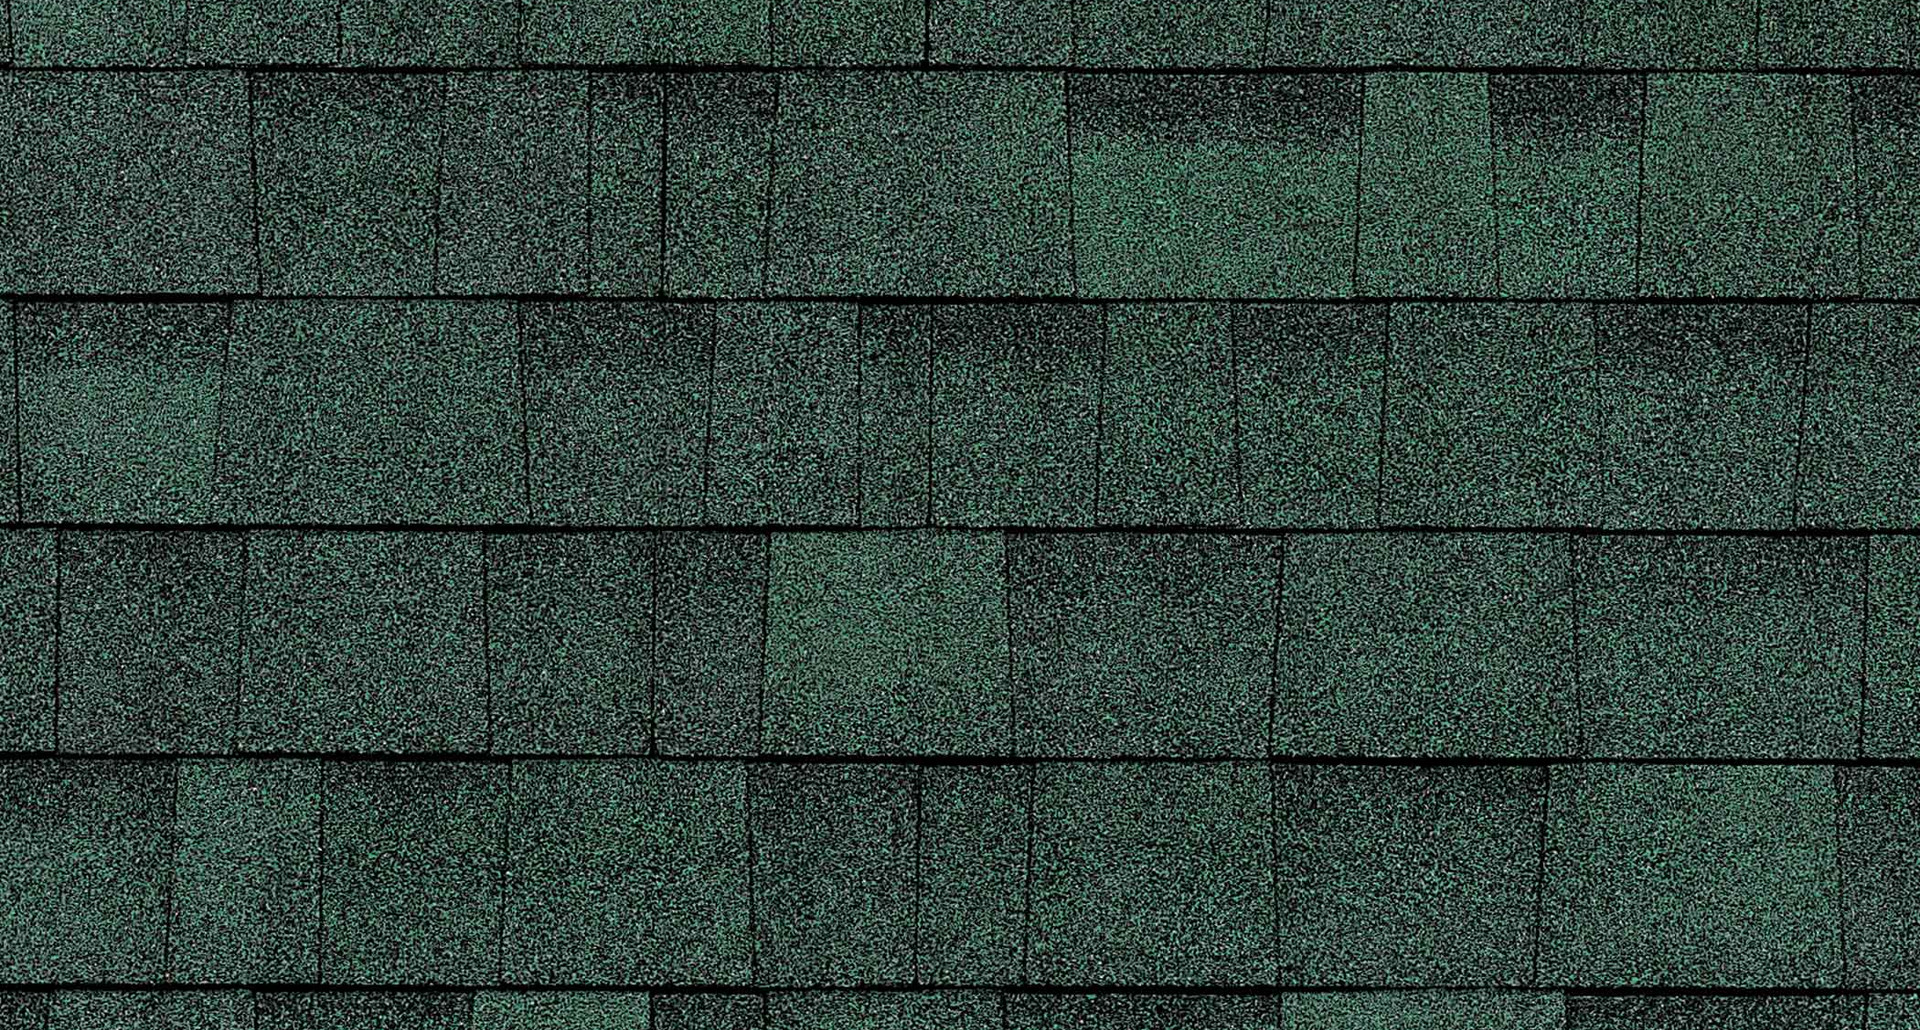 Owens Corning OakRidge Chateau Green